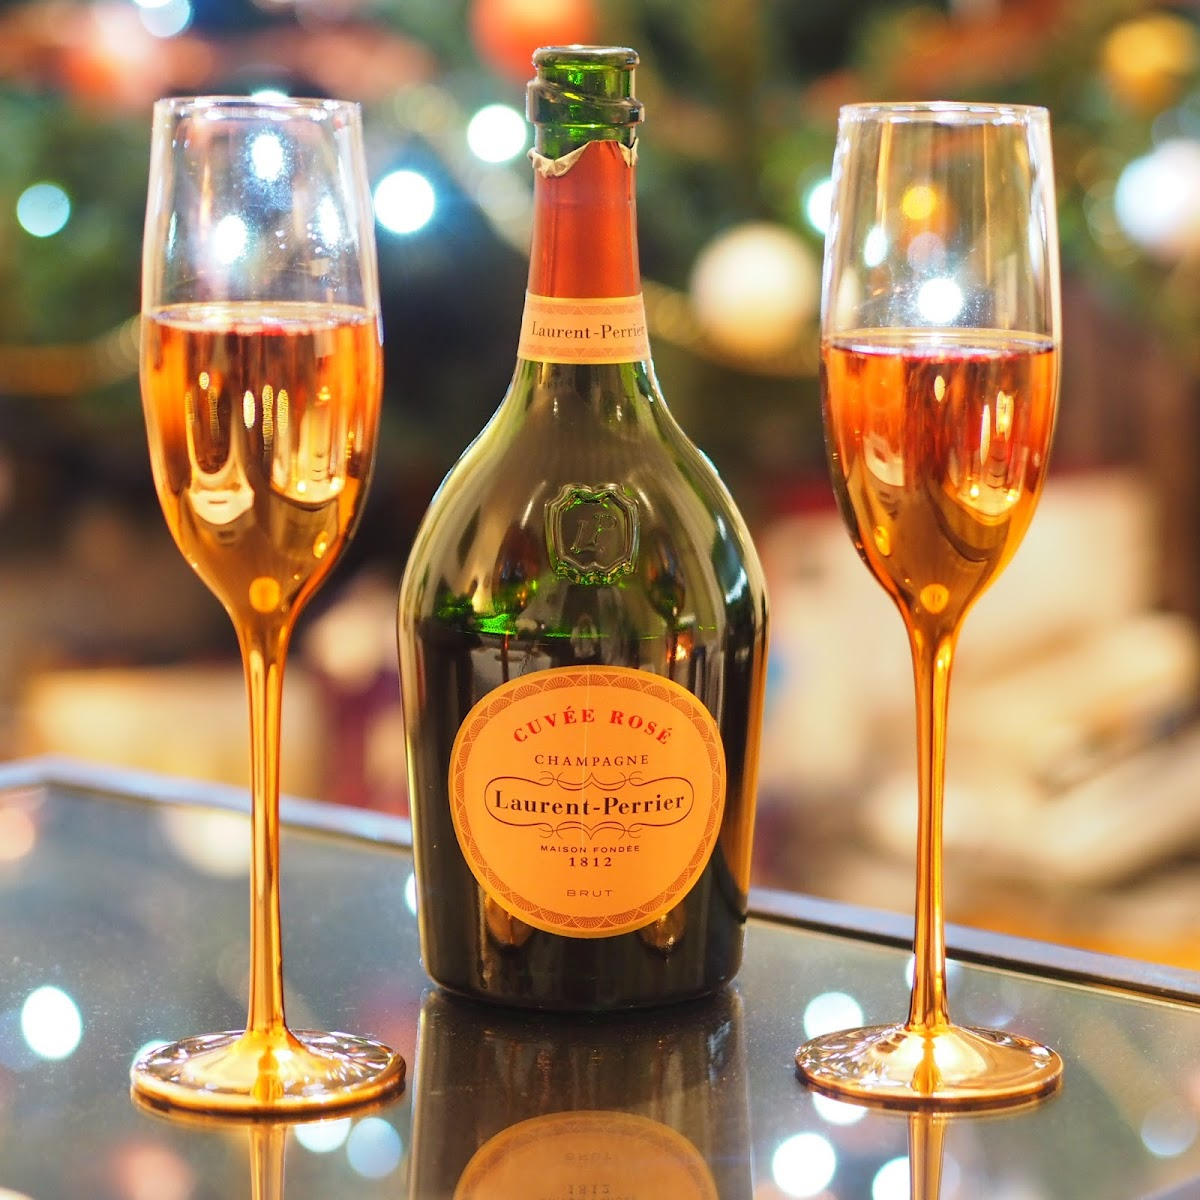 Laurent Perrier champagne Christmas 2016 New Year Priceless Life of Mine over 40 lifestyle blog